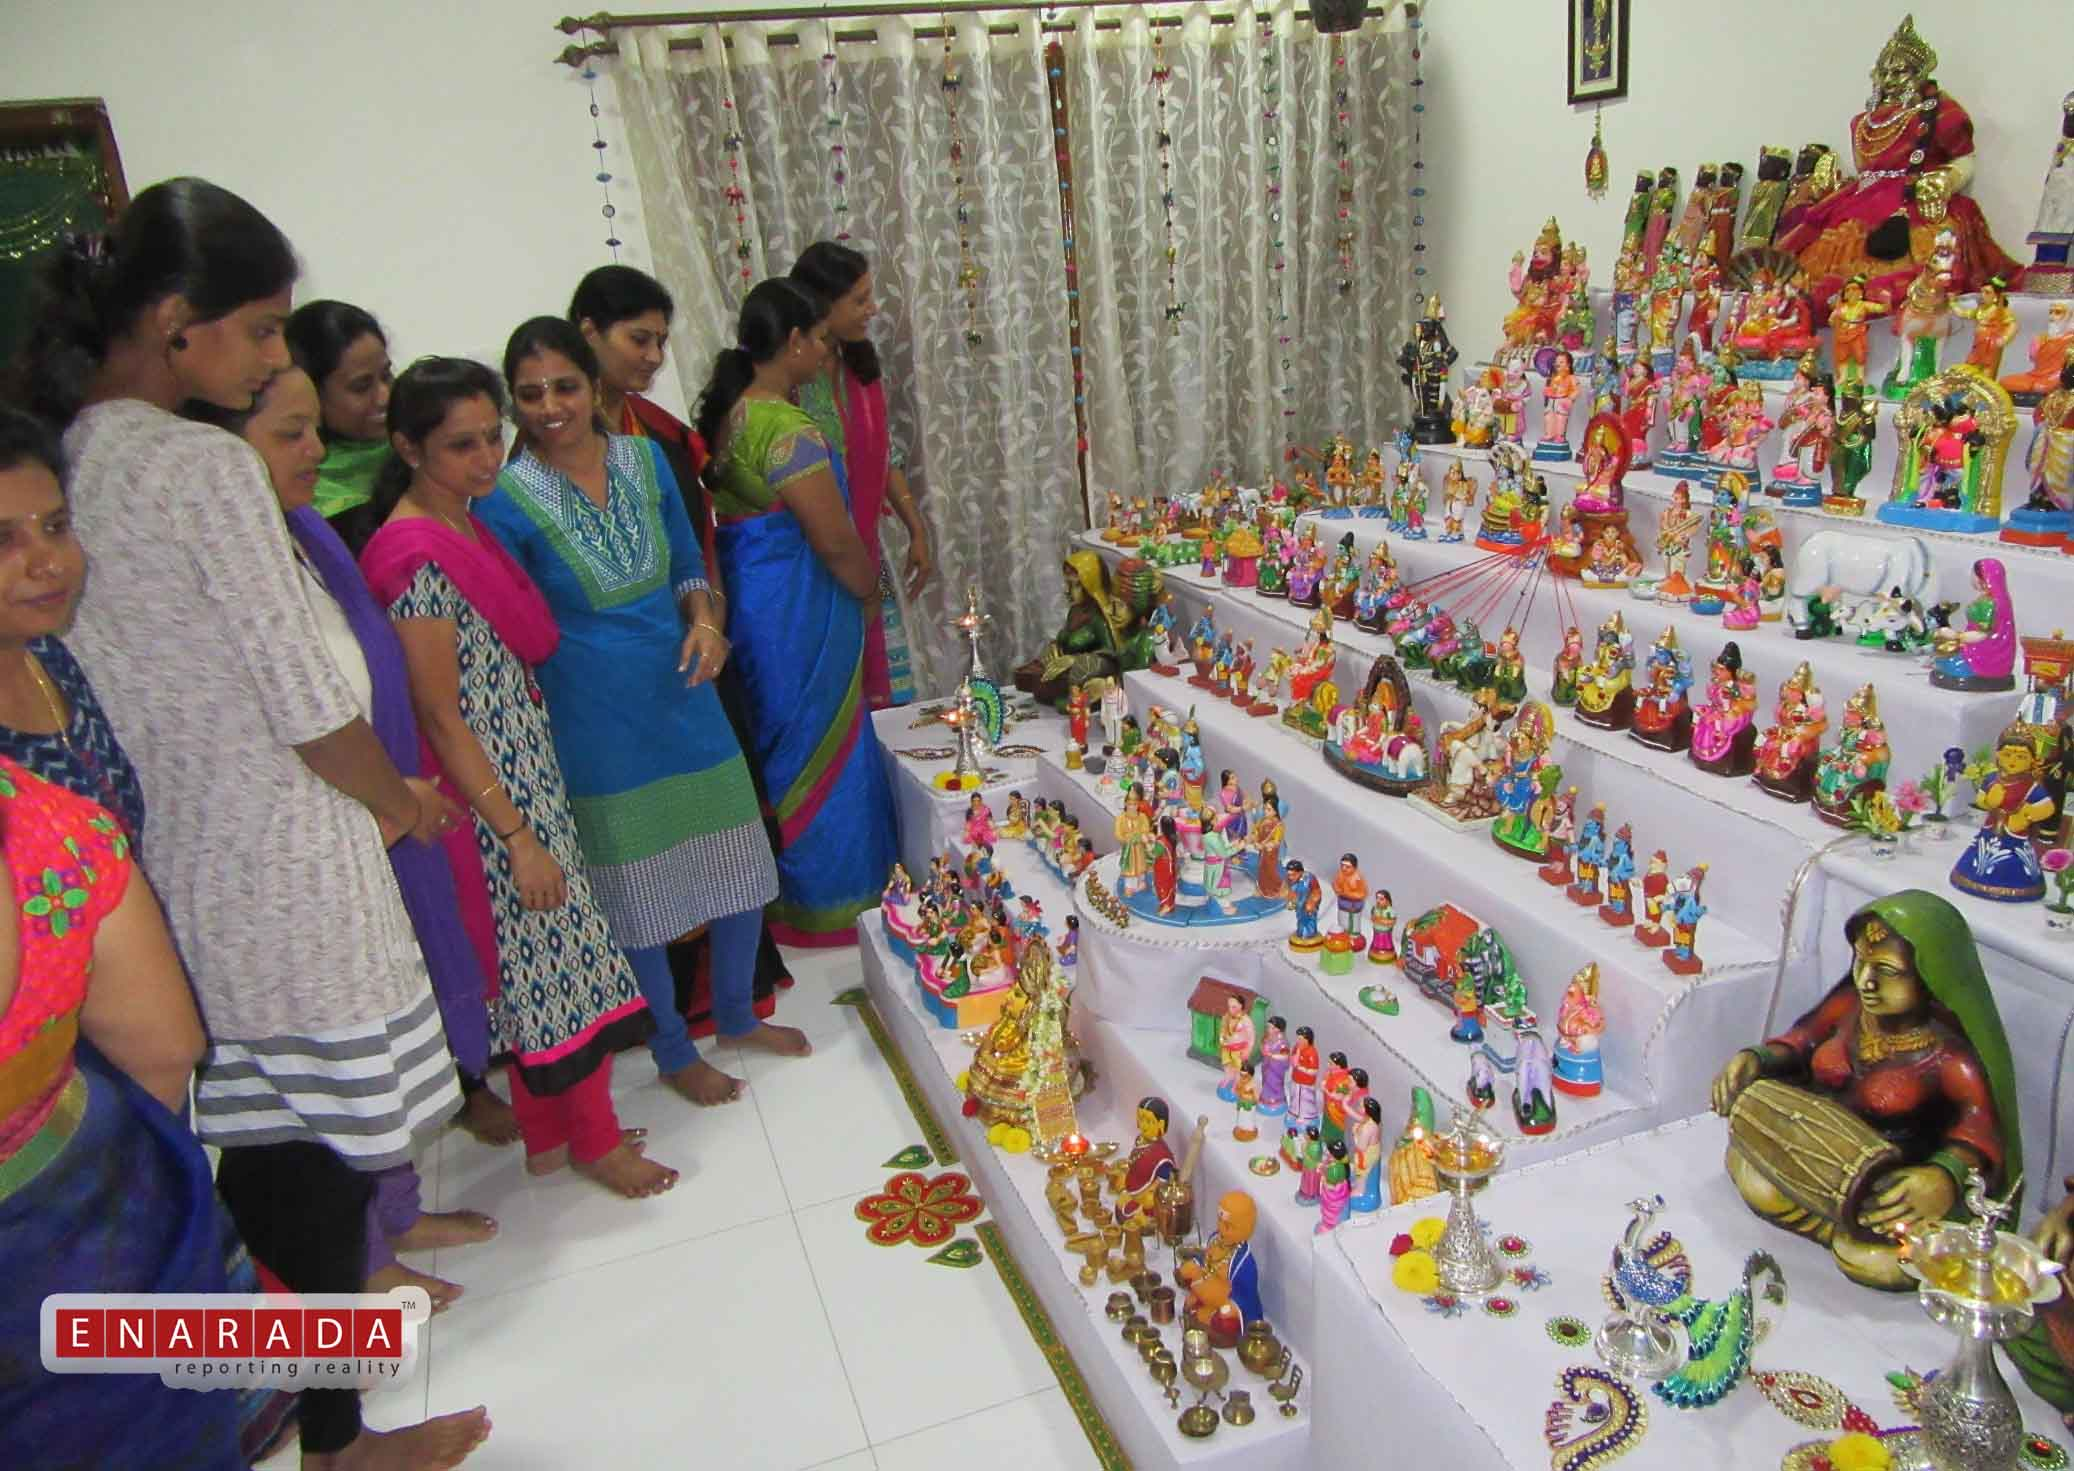 Dolls arrangement in Malleshwaram. Pic by eNarada